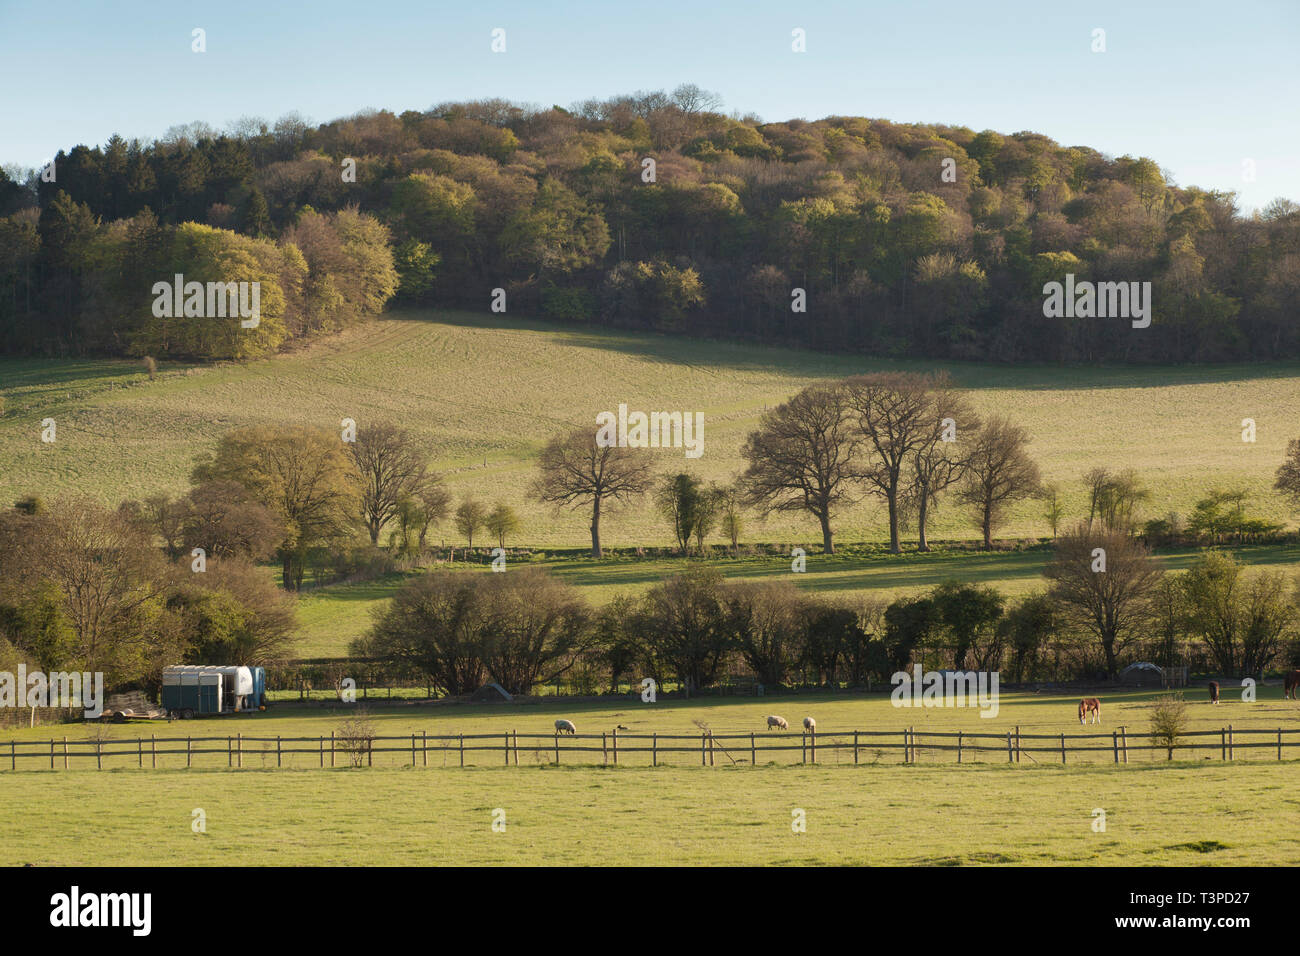 The countryside in the Chilterns nbetween Fingest, Turville and Skirmett in Spring with hilltop Beech woods and sheep grazing - Stock Image